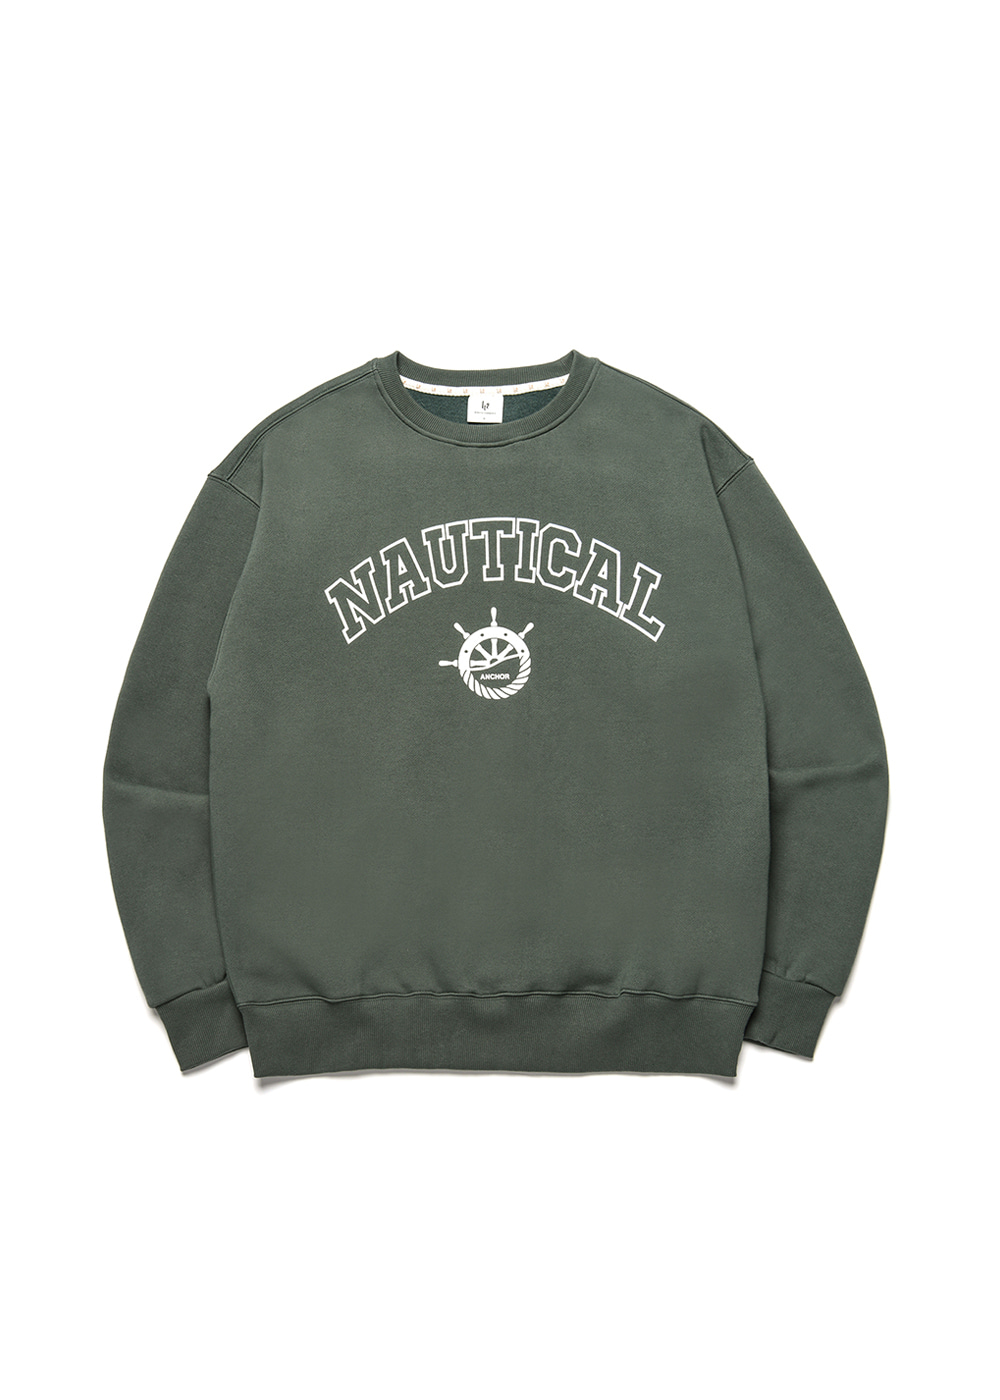 Nautical sweat shirt [dark green]